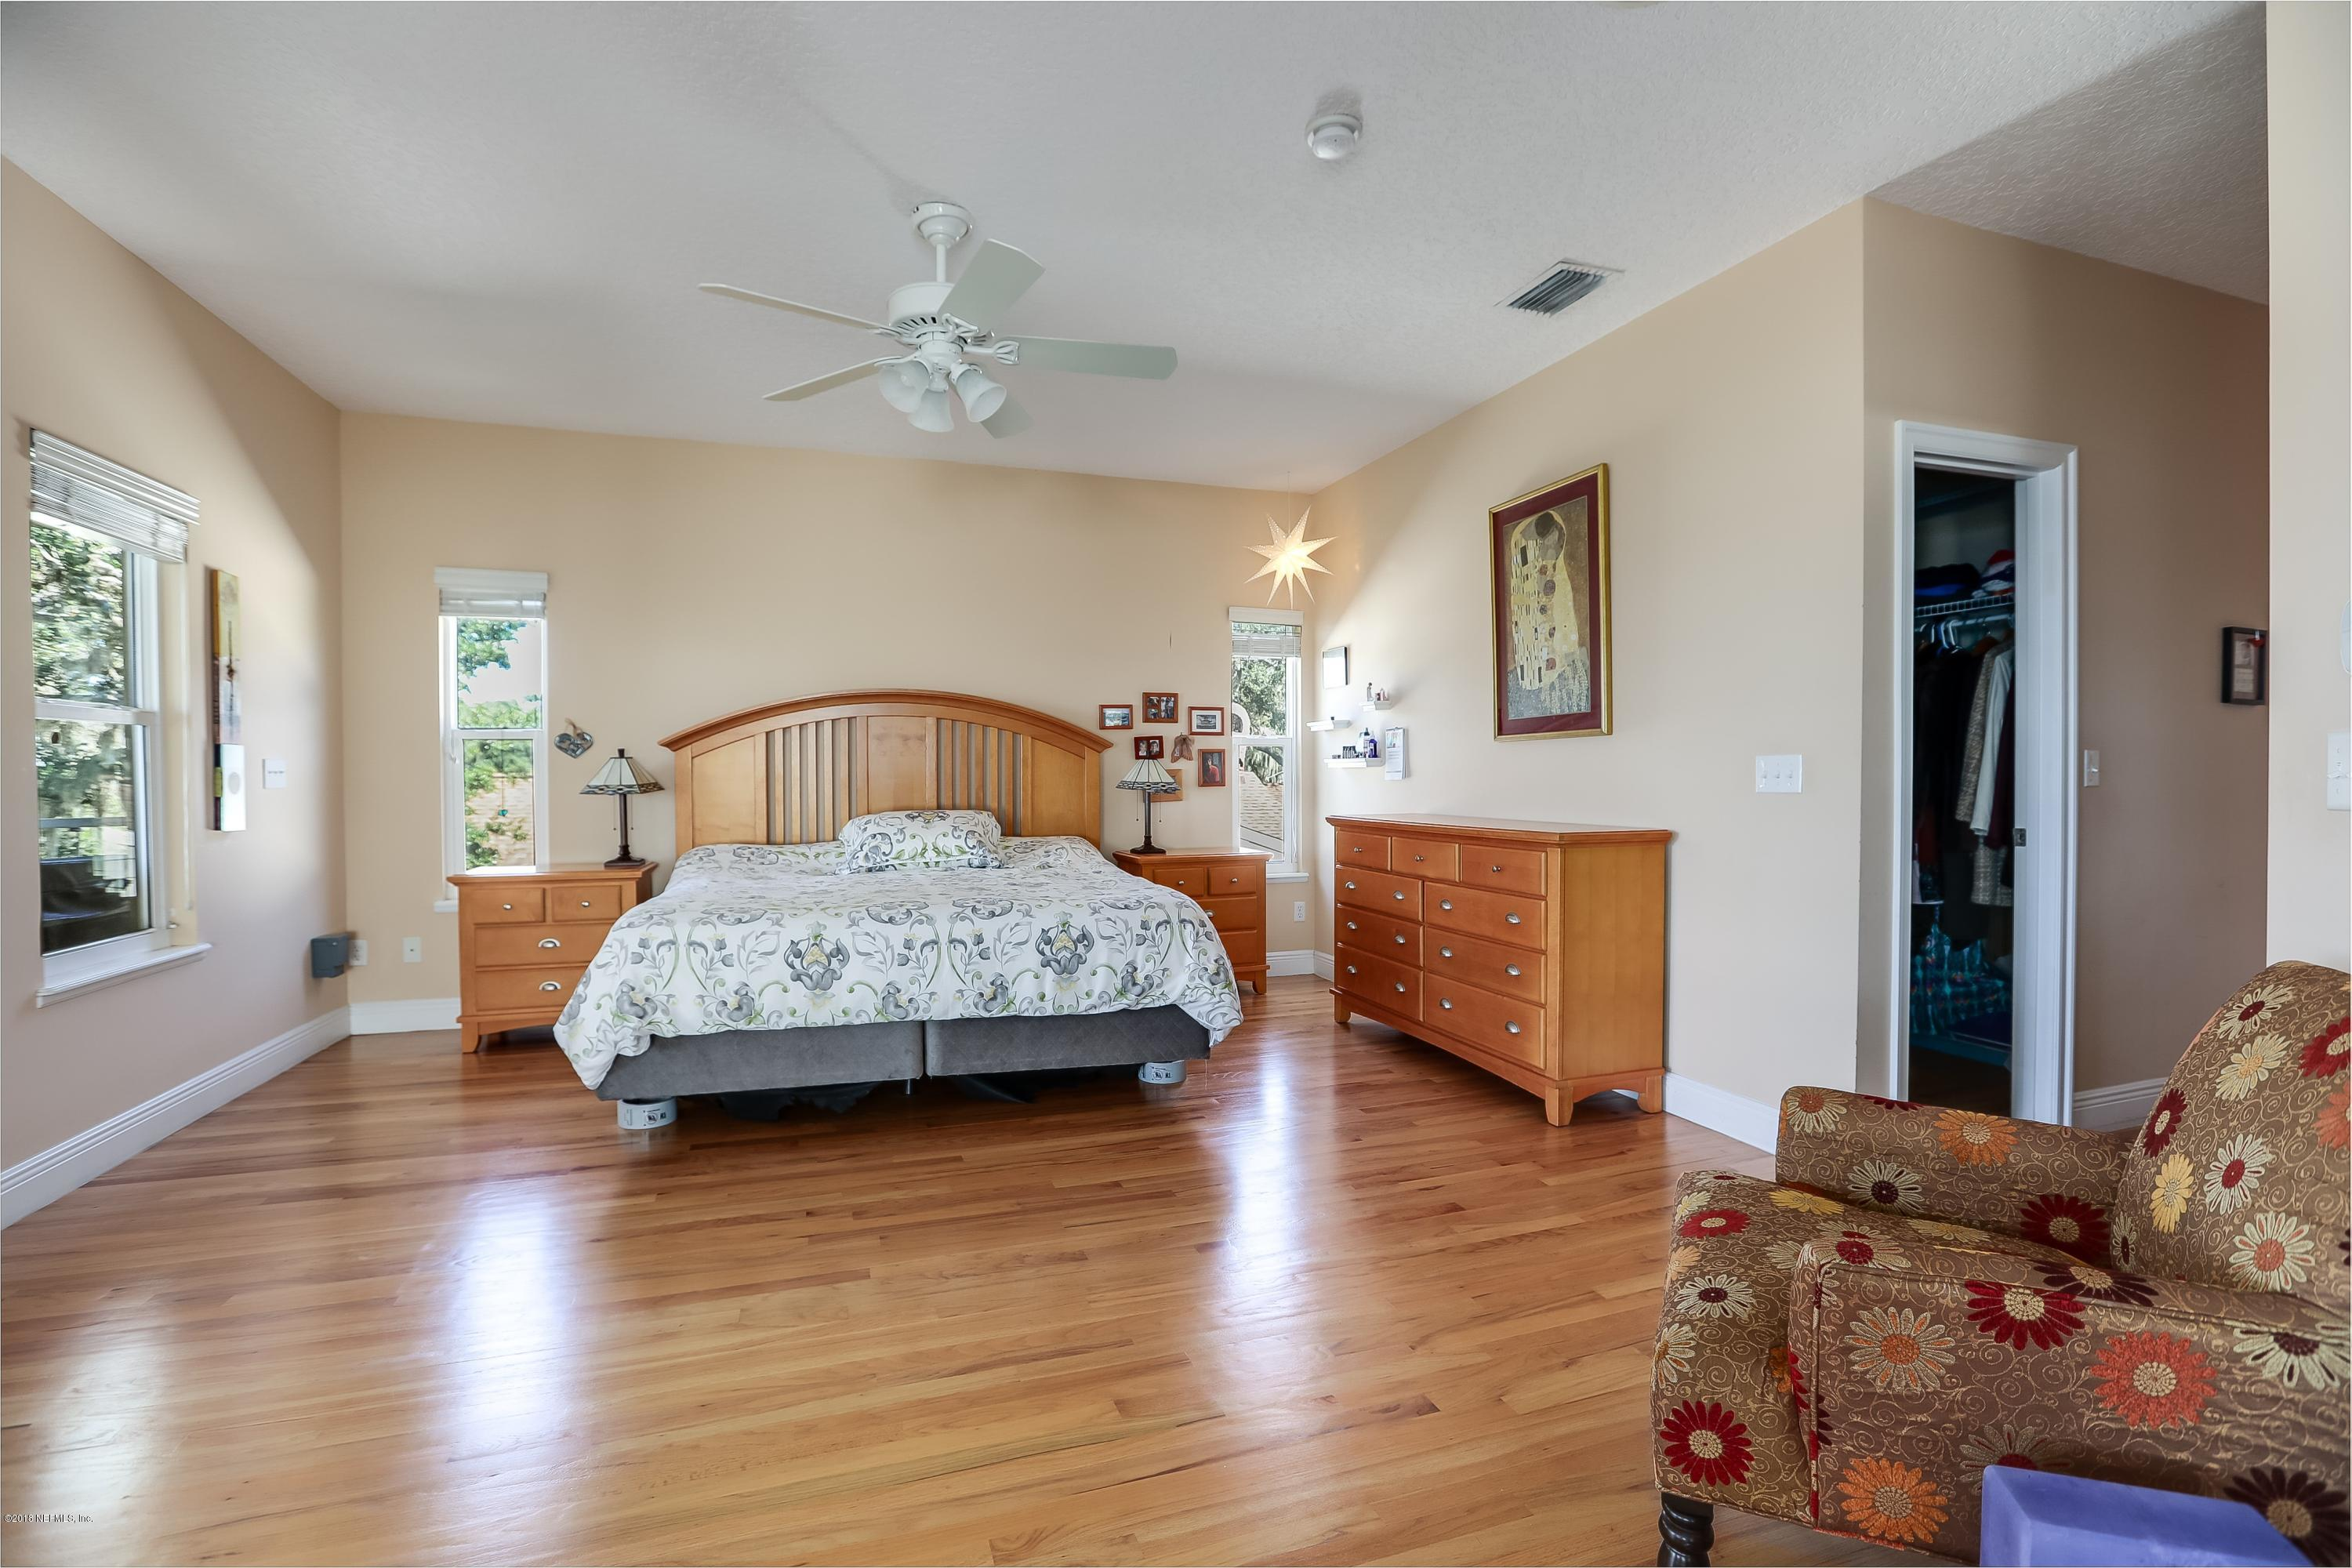 5389 RIVERVIEW, ST AUGUSTINE, FLORIDA 32080, 5 Bedrooms Bedrooms, ,4 BathroomsBathrooms,Residential - single family,For sale,RIVERVIEW,964864